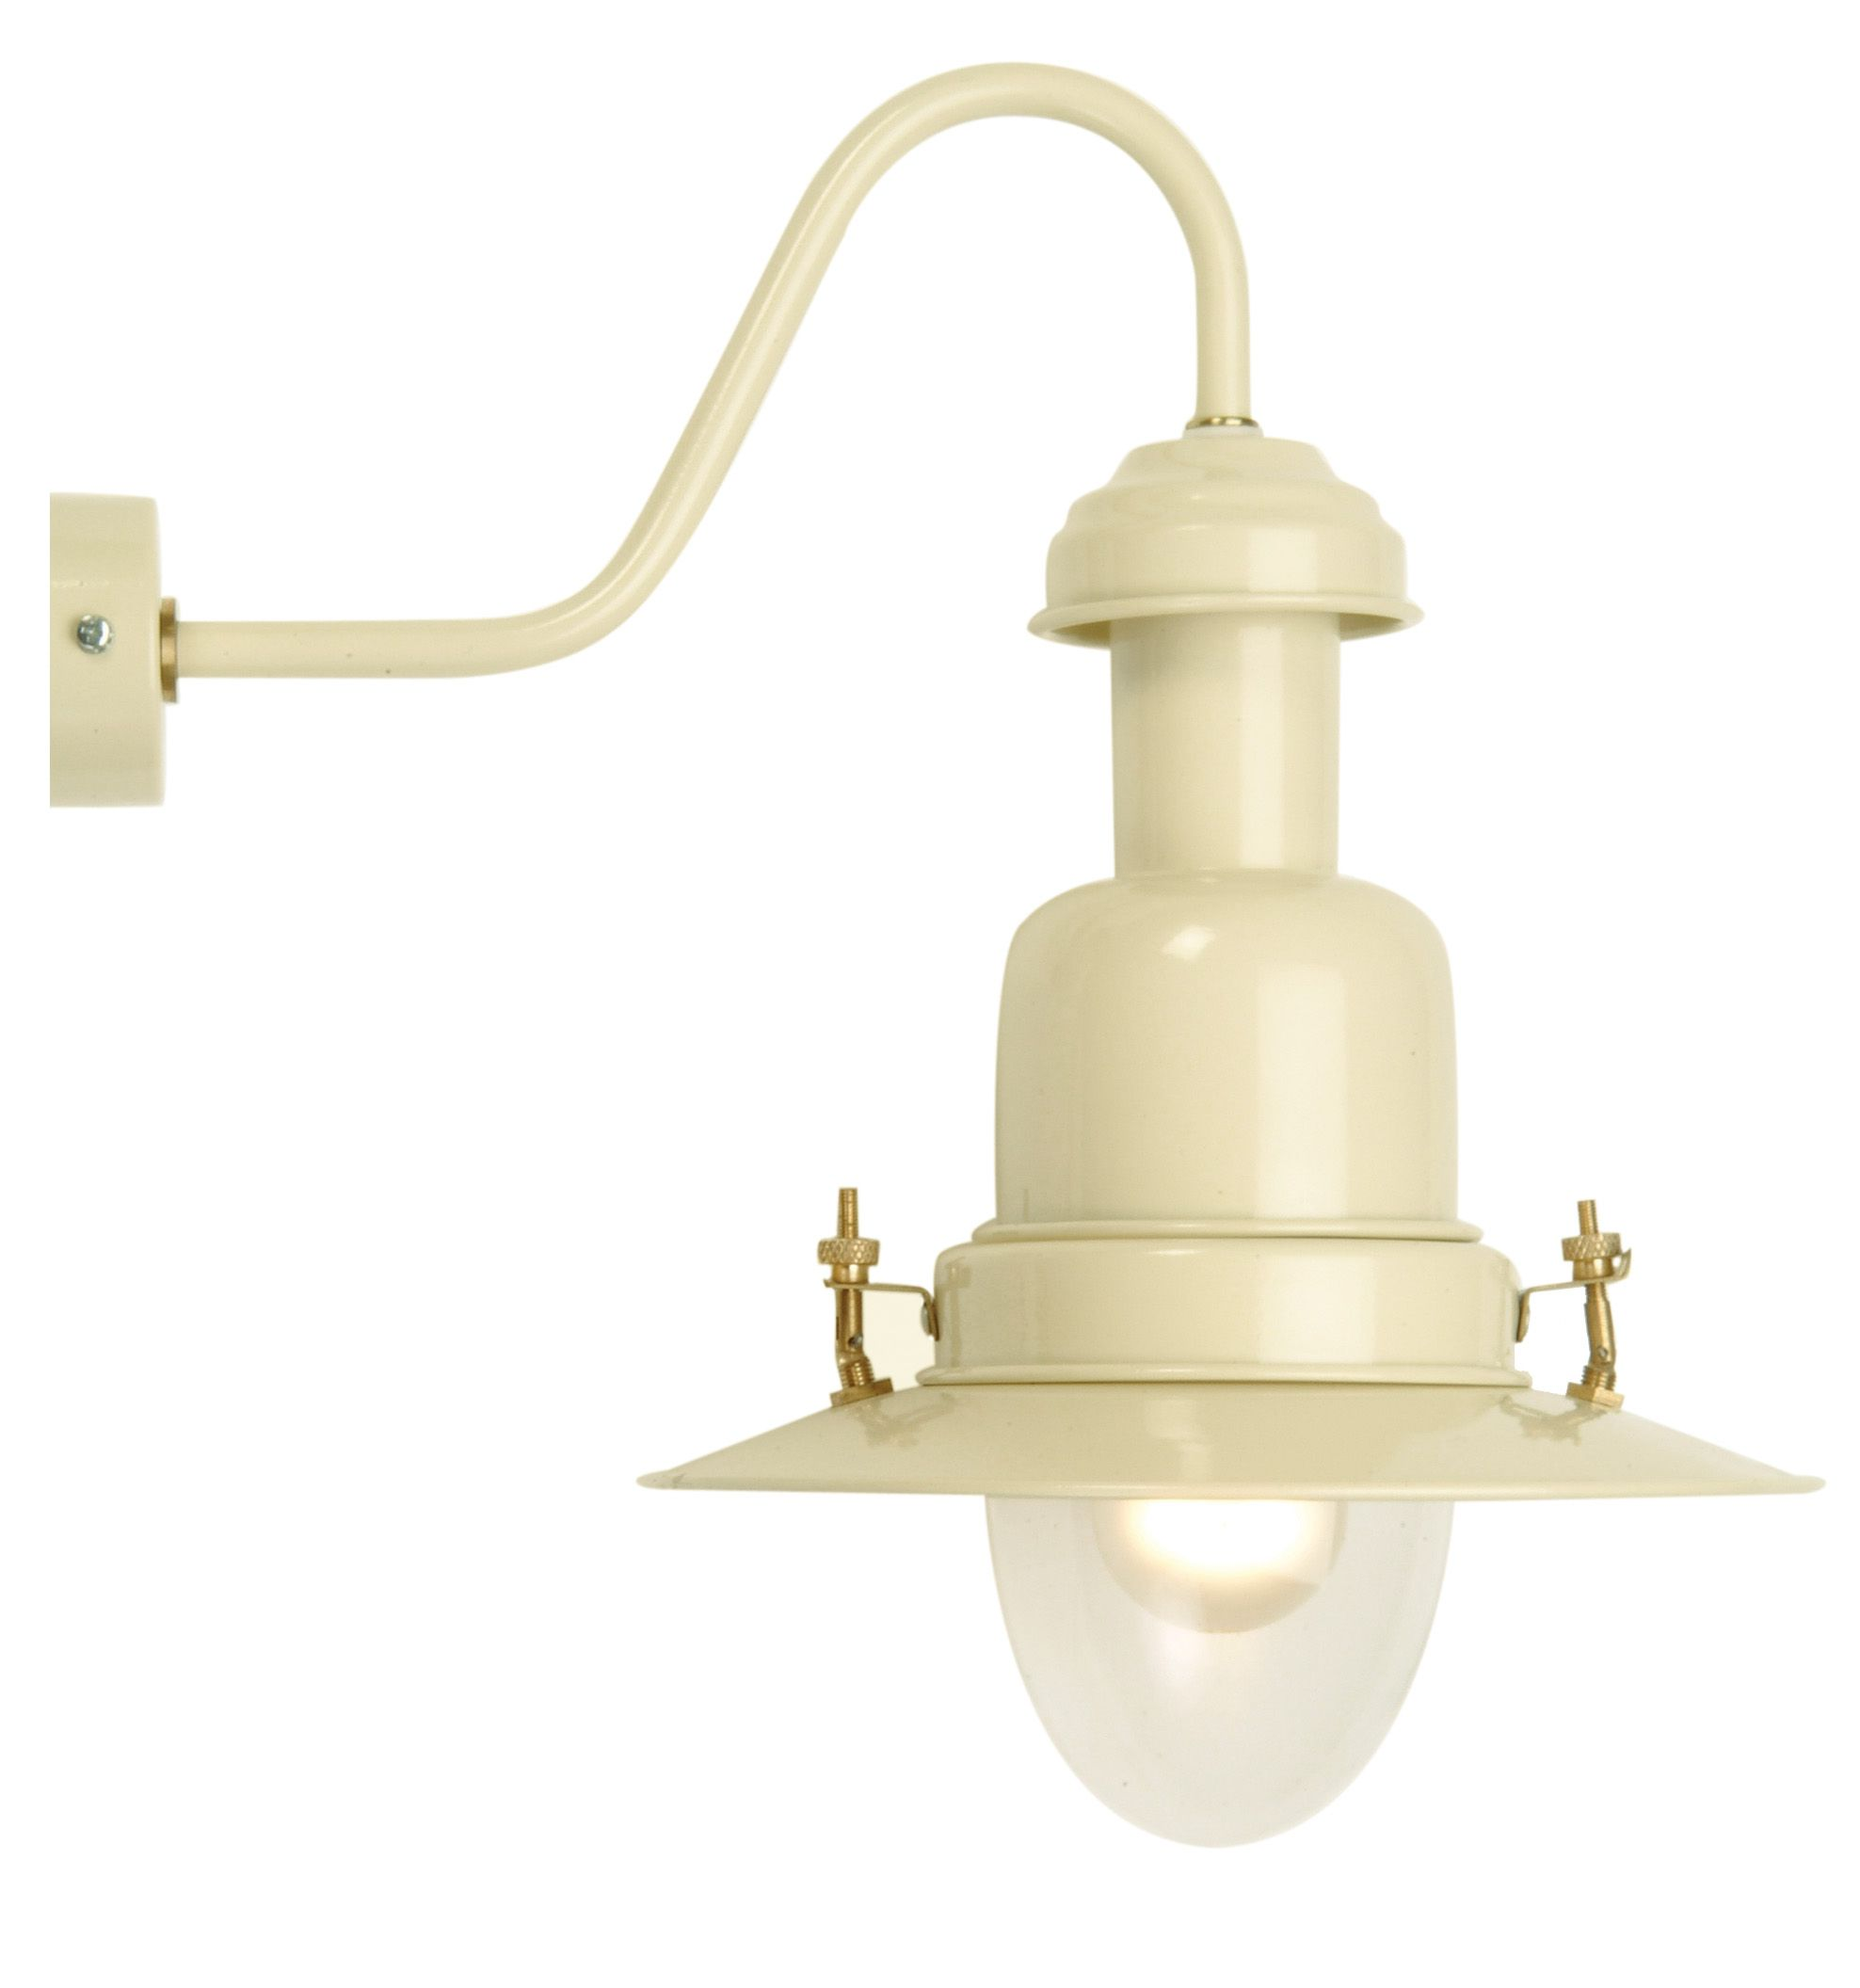 Garden Trading Co Fishing wall light cream - review, compare prices, buy online